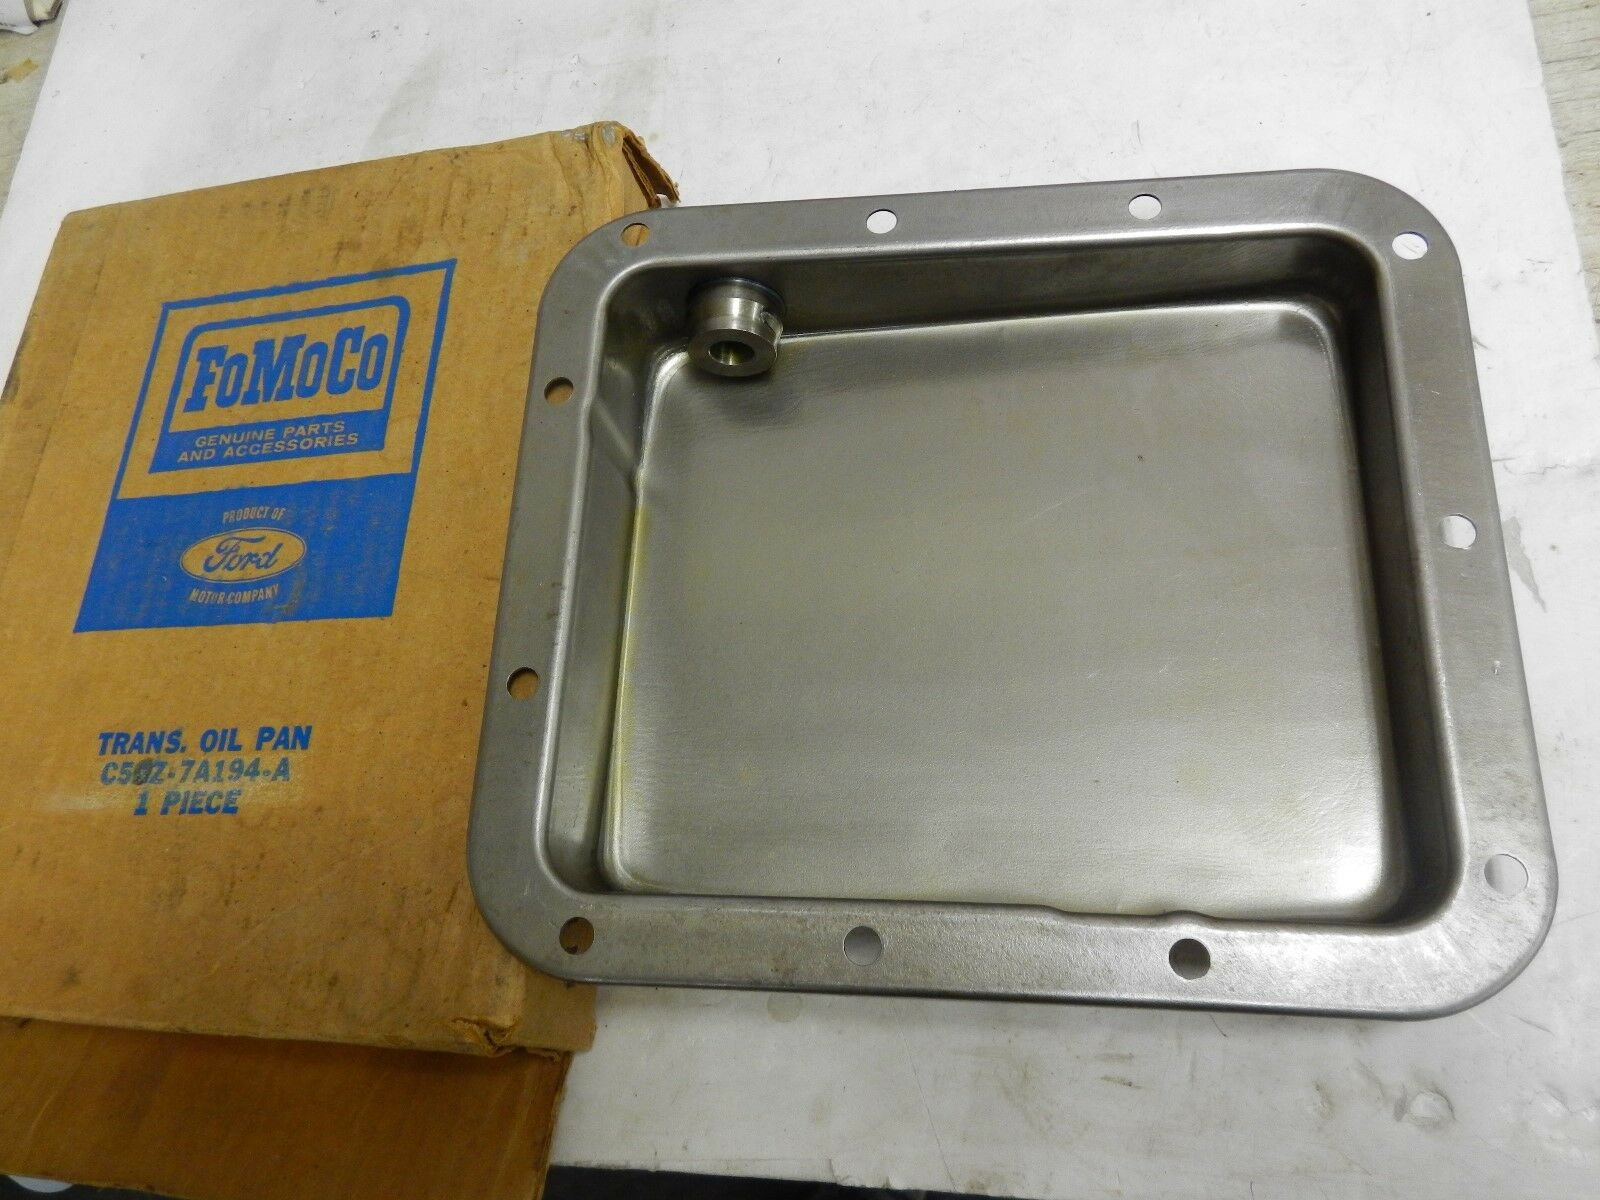 Transmission oil pan, 1965/69 Ford Galaxie w/C4 NOS